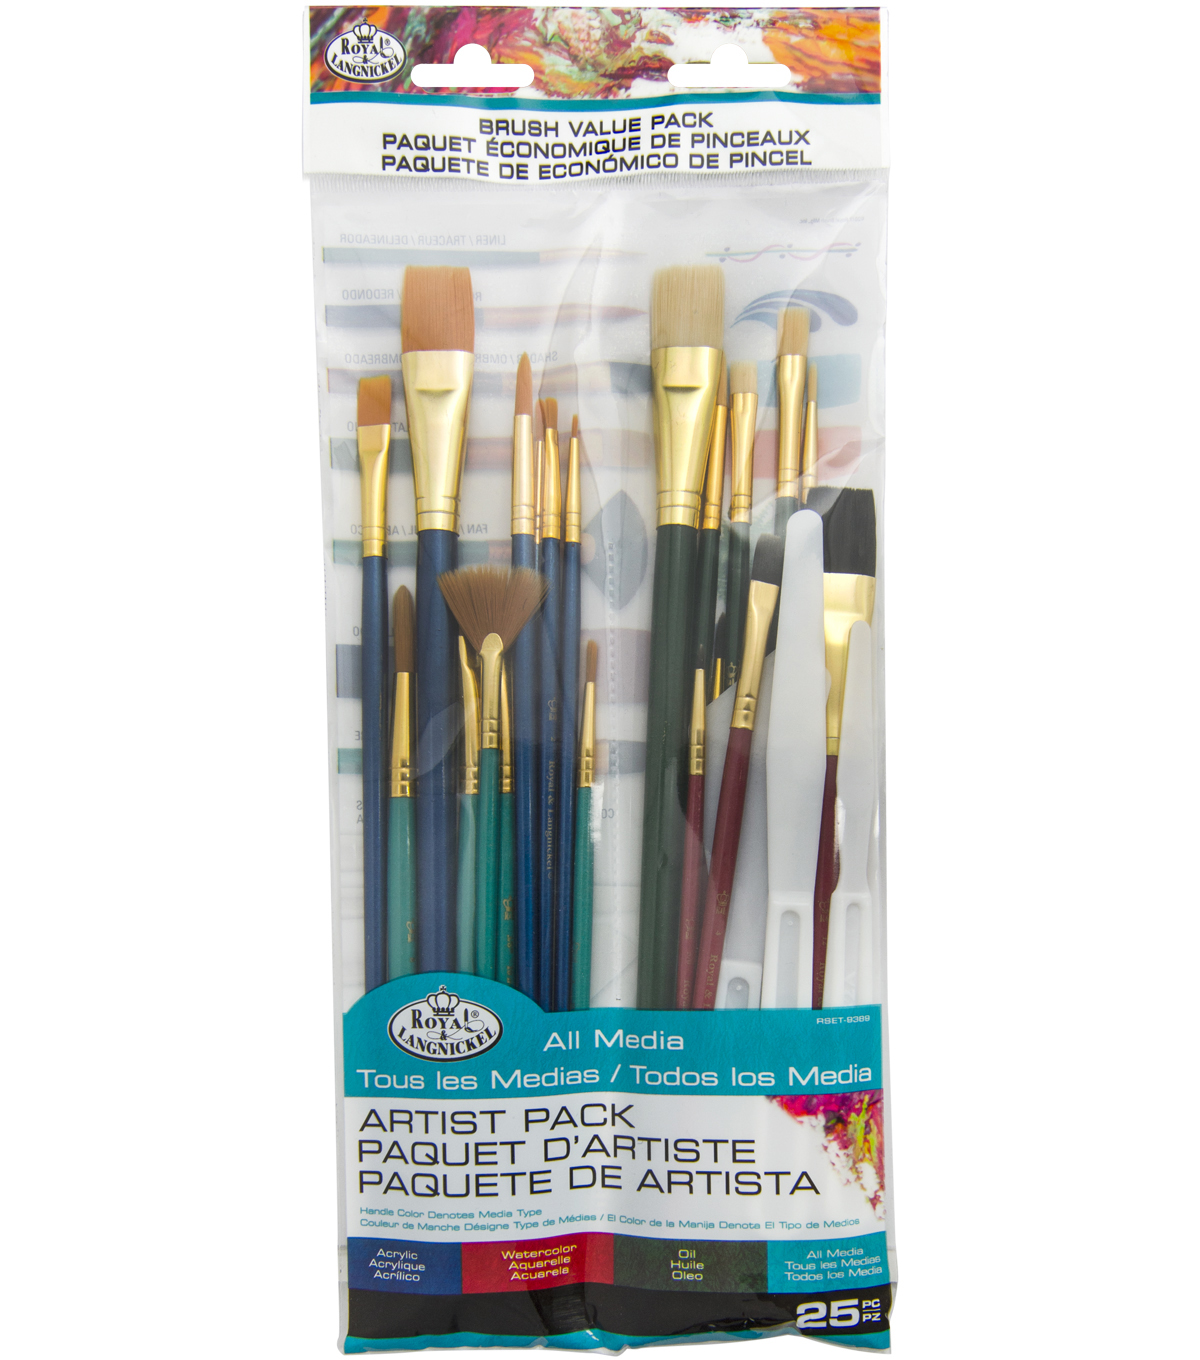 Royal And Langnickel Rart-18 Craft Brush Value Pack Terrific Value pack Of 25